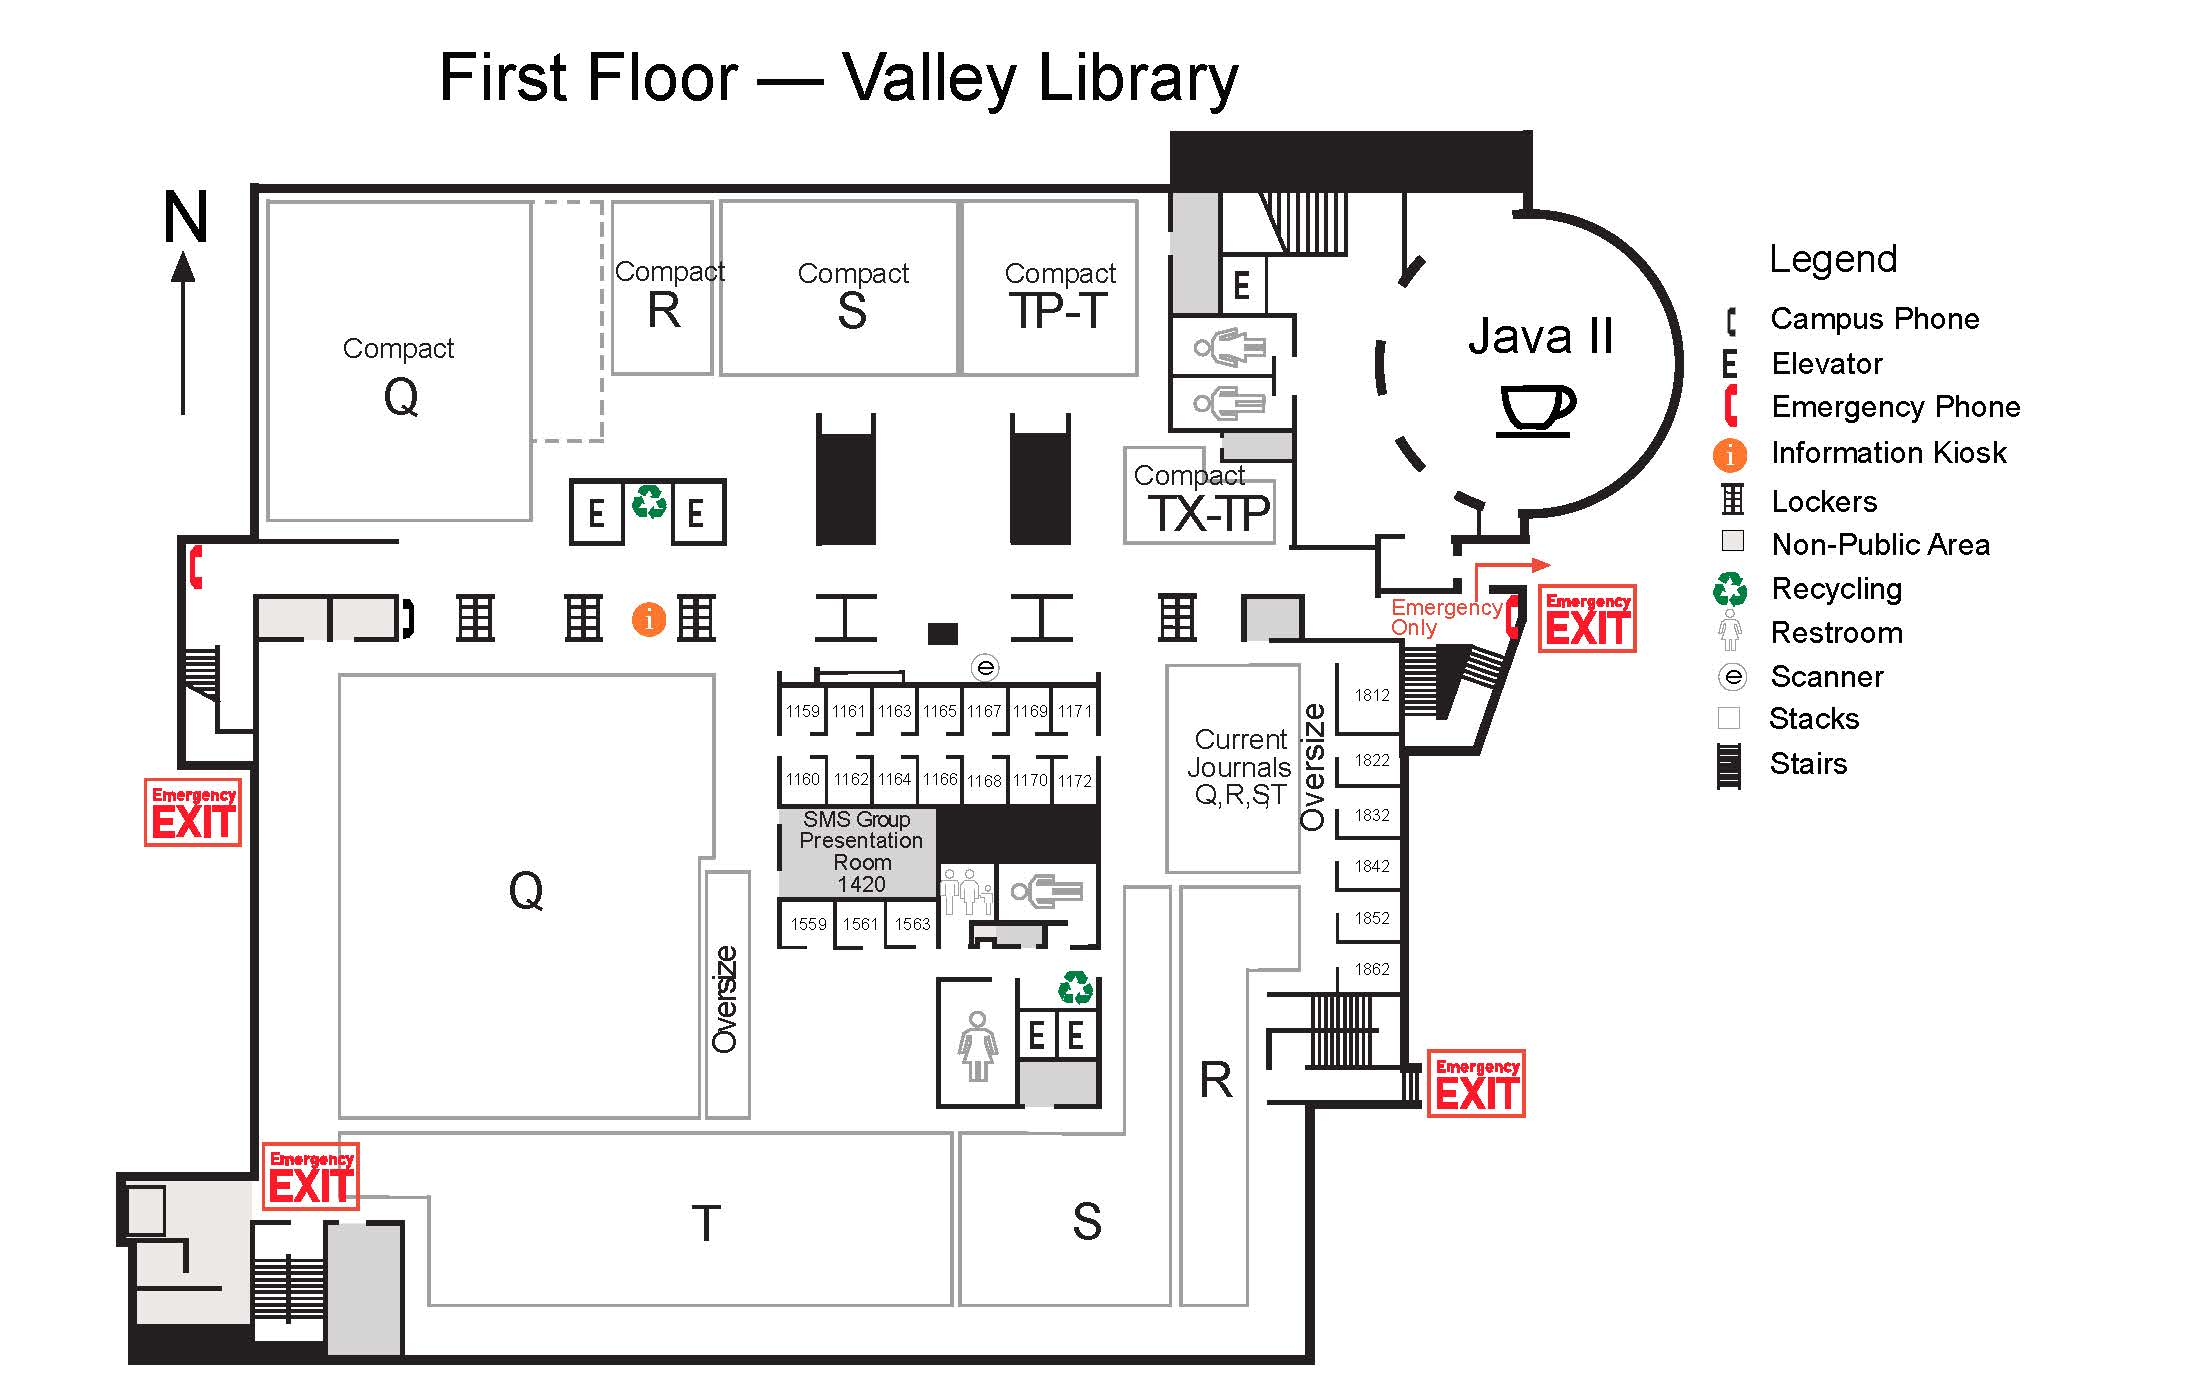 Valley Library First Floor Map